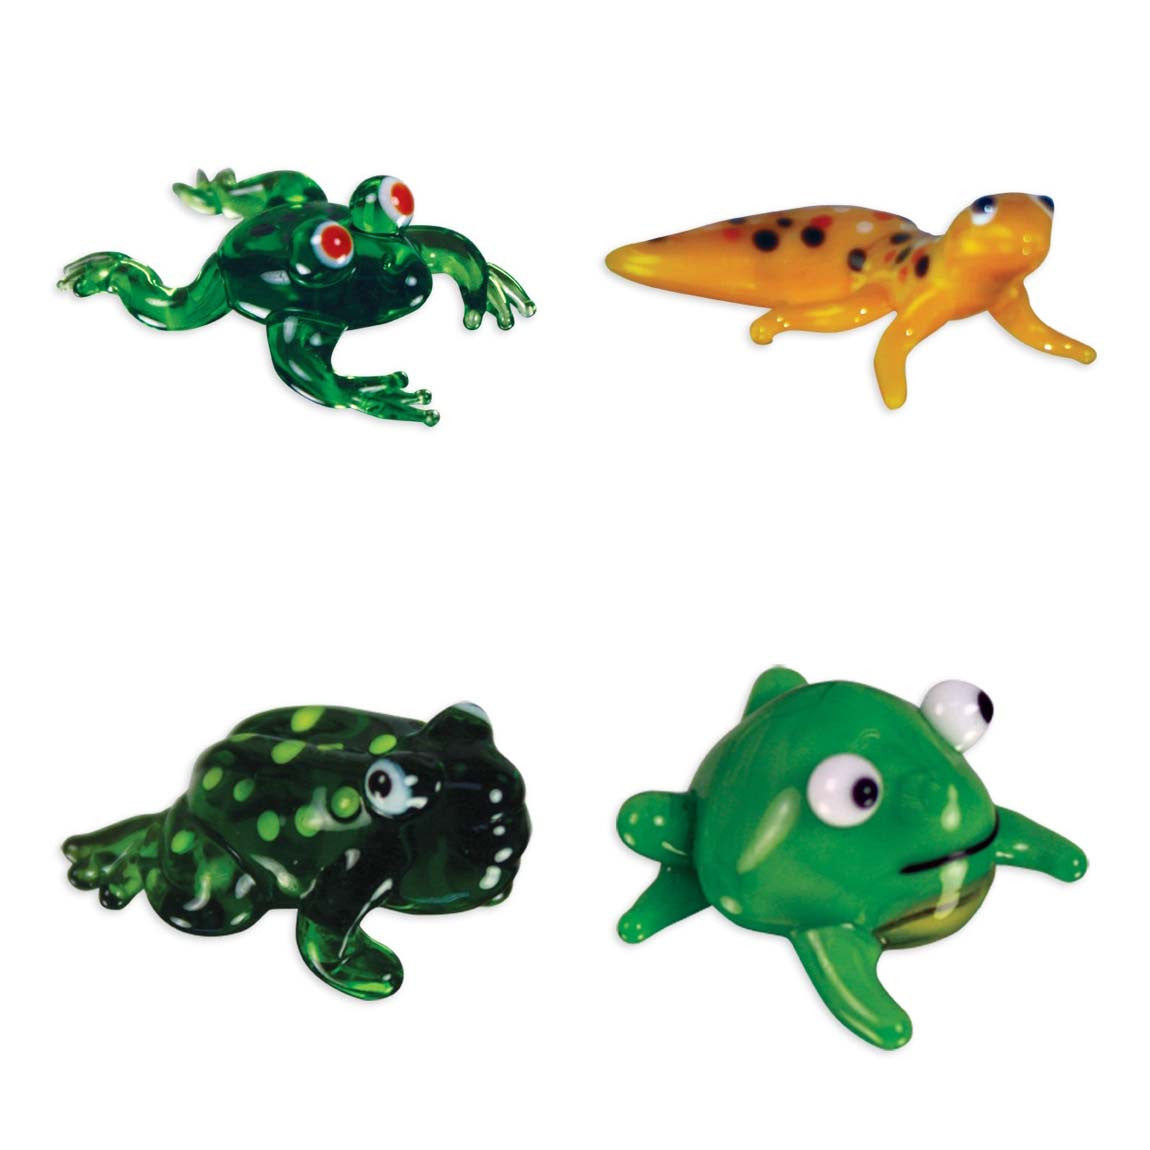 Looking Glass Torch - Reptiles - Froggy, Gecko & 2 Different Toads (4-Pack) - Off The Wall Toys and Gifts